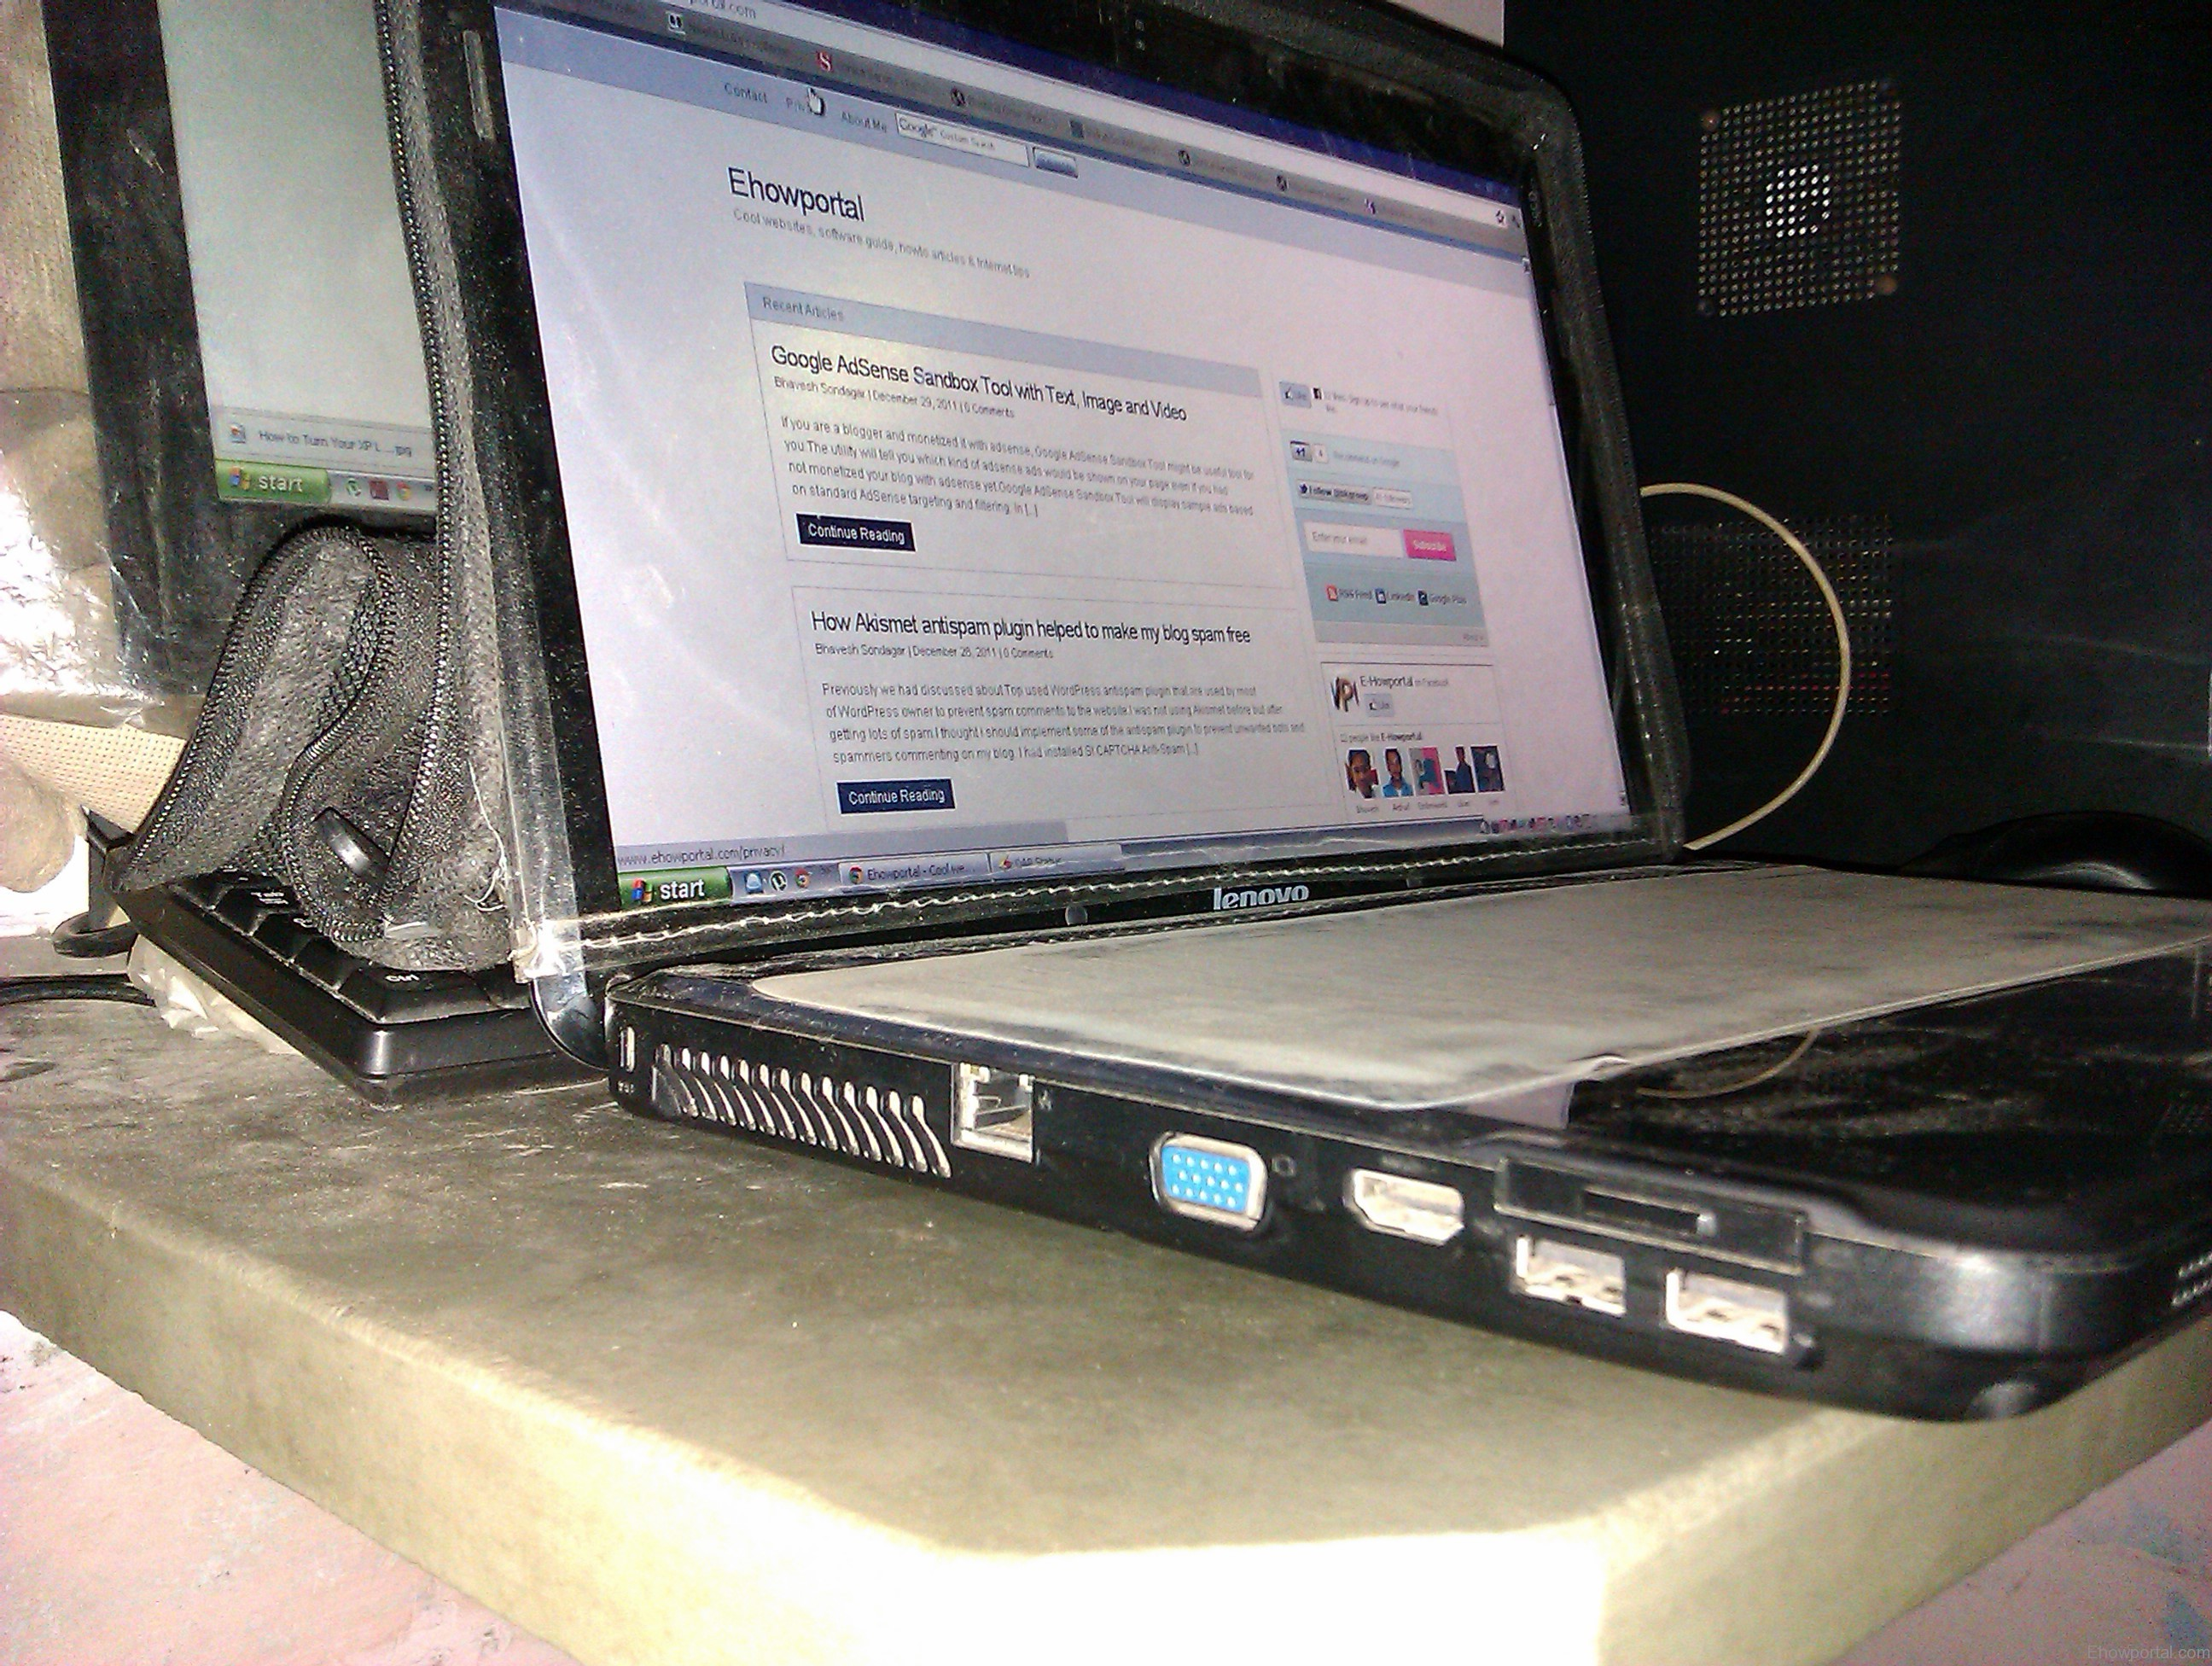 Side view of my laptop